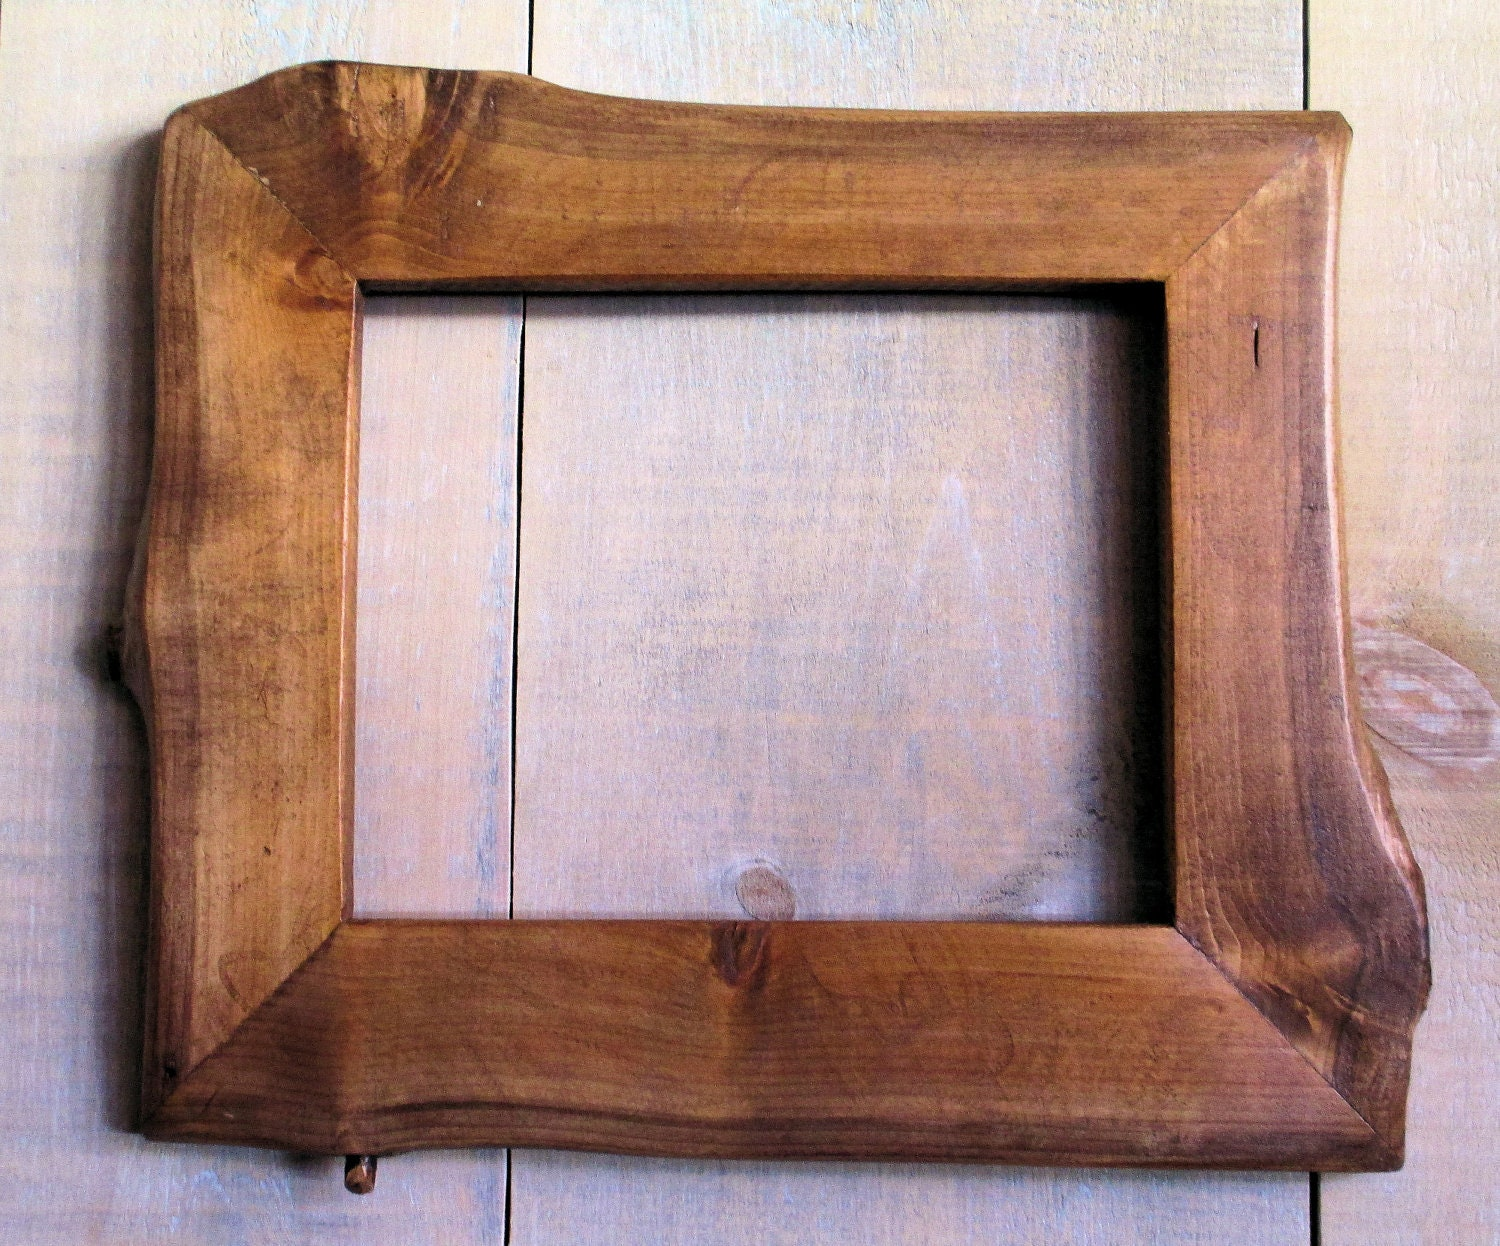 Wood Photo Frames : Handmade Rustic Wood Frame 7 1/2 x 9 3/4 by ModerationCorner